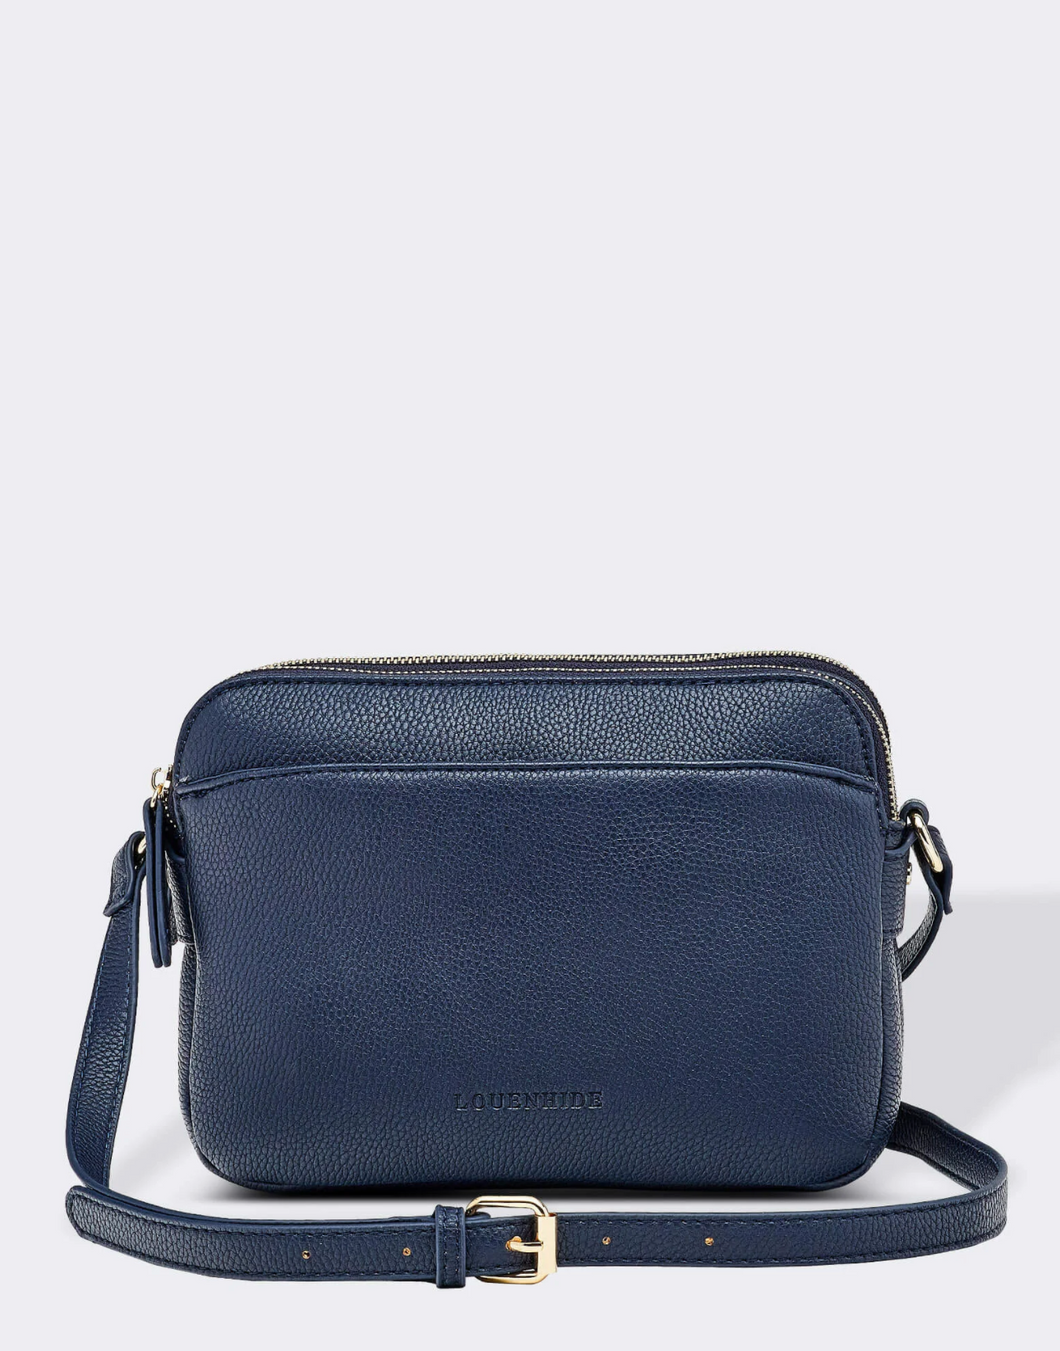 LOUENHIDE CICI CROSSBODY BAG- NAVY